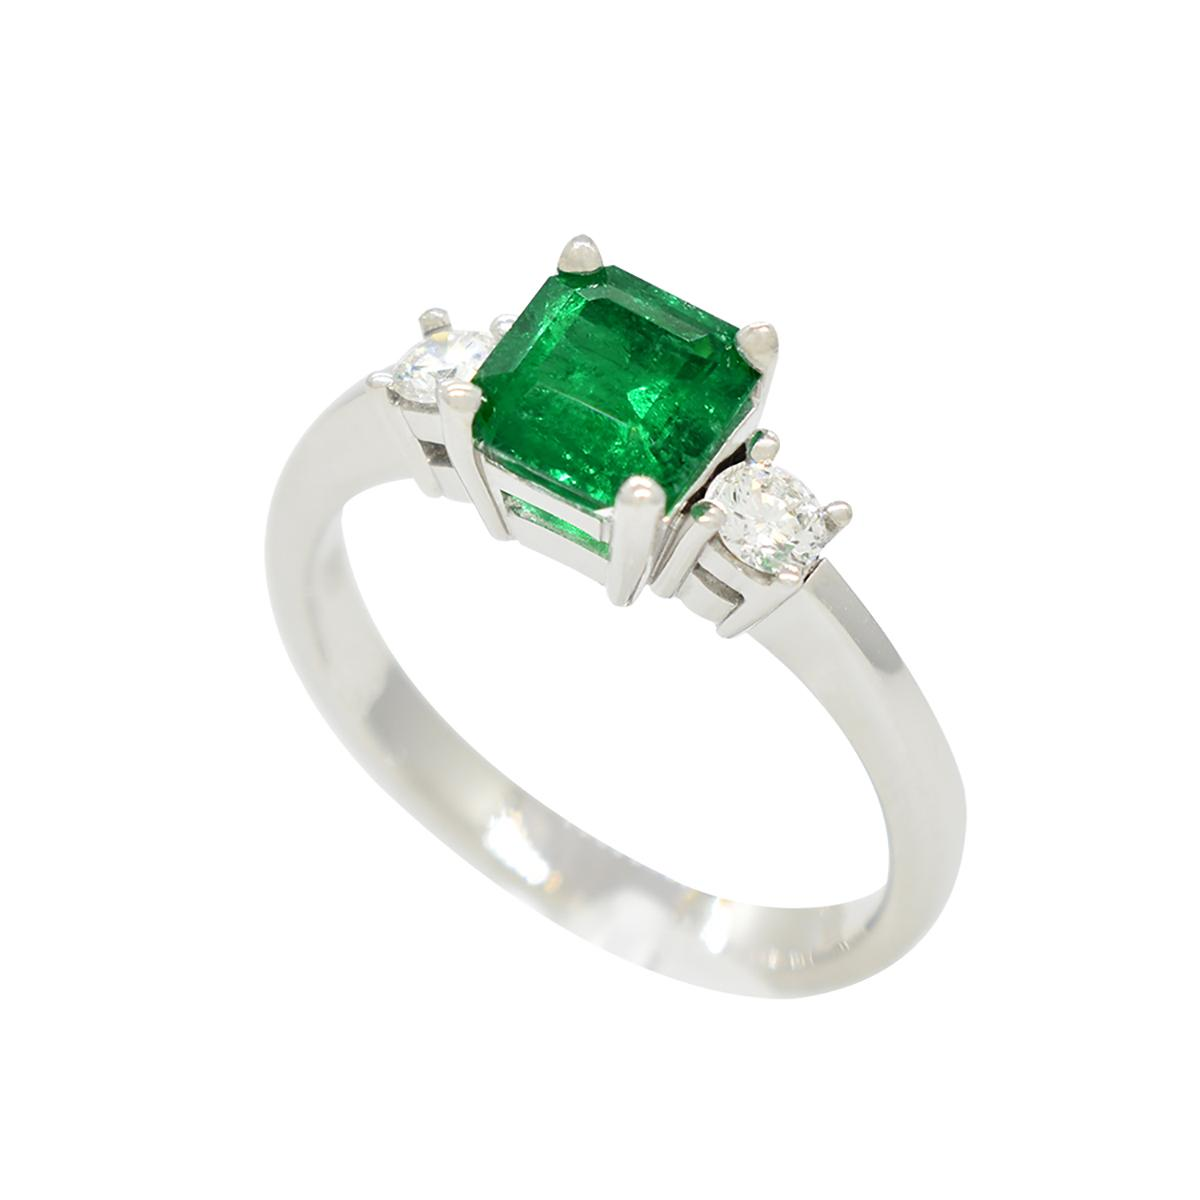 emerald-ring-with-round-diamonds-in-18k-white-gold-3-stones-ring-style--